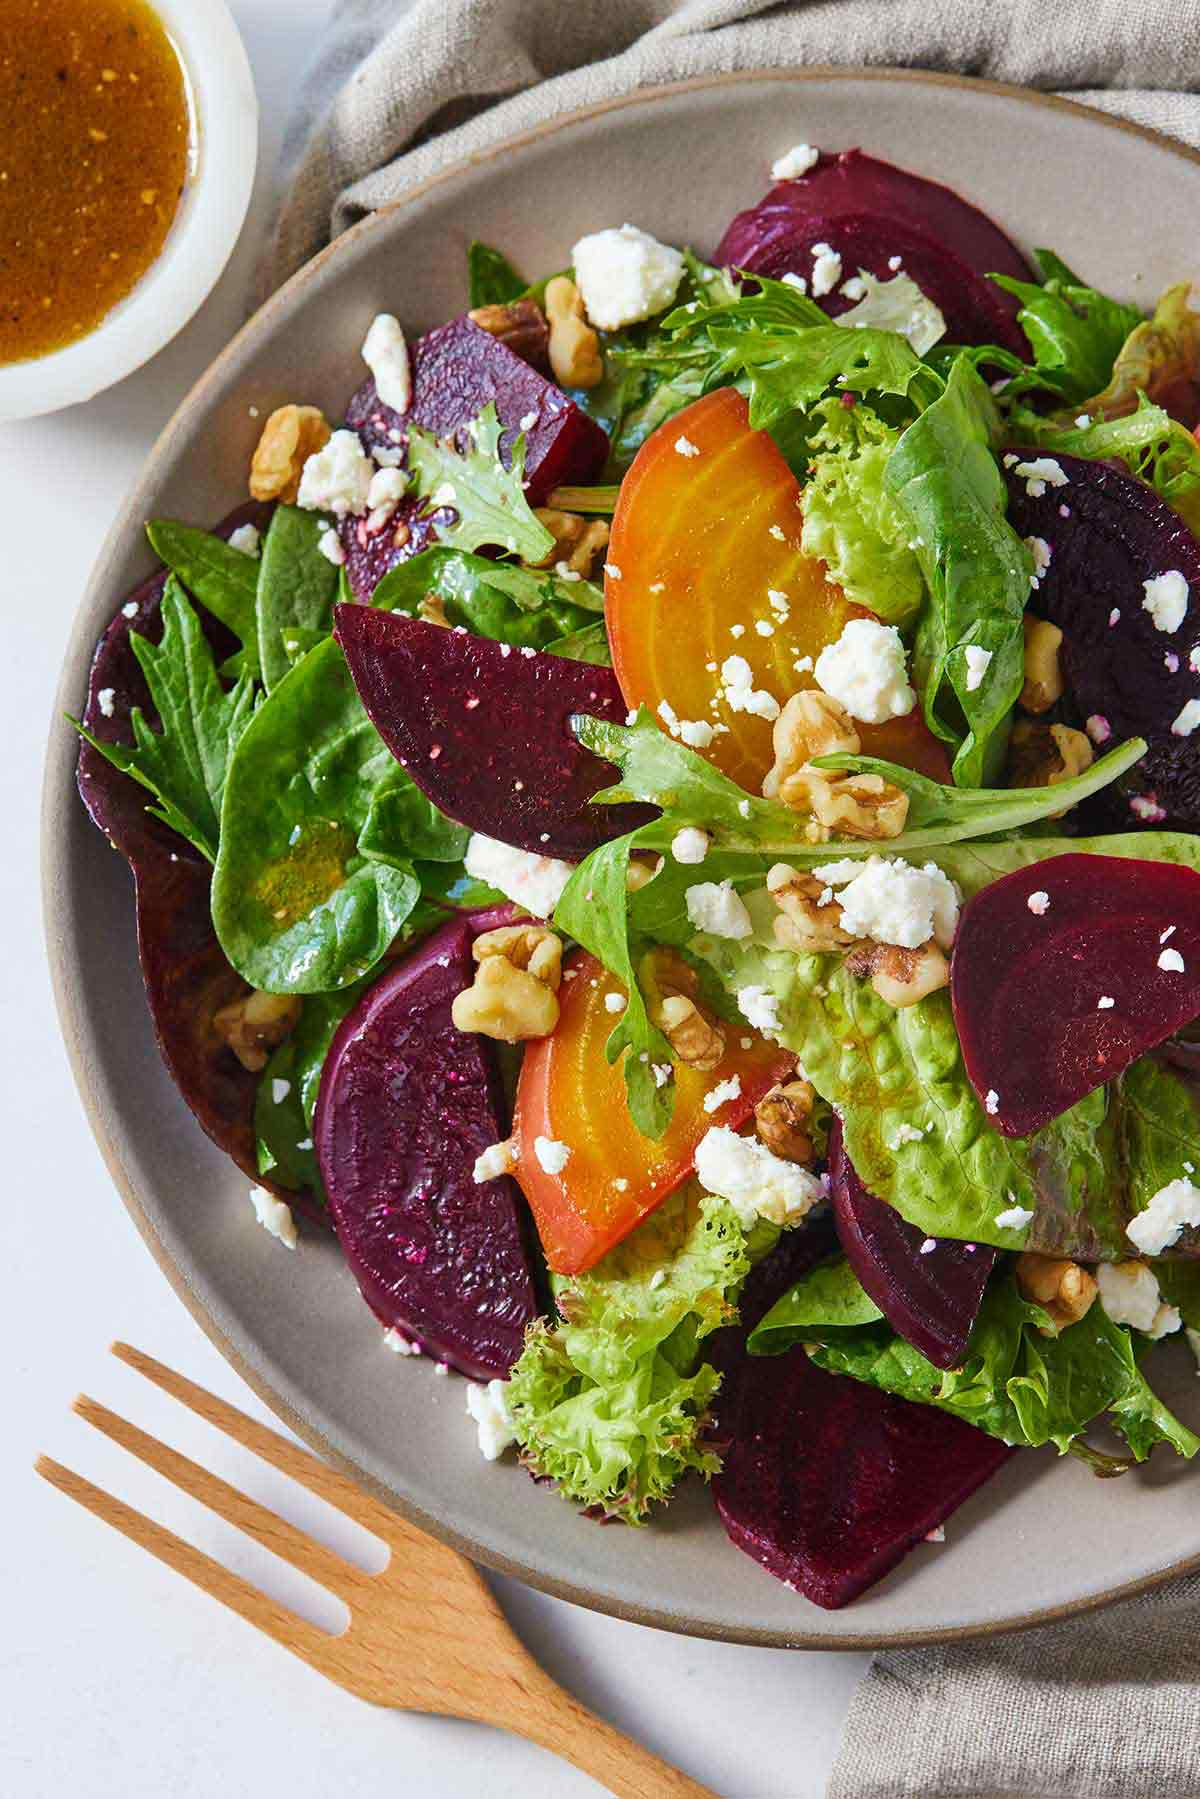 Overhead view of a plate of beet salad, off centered.